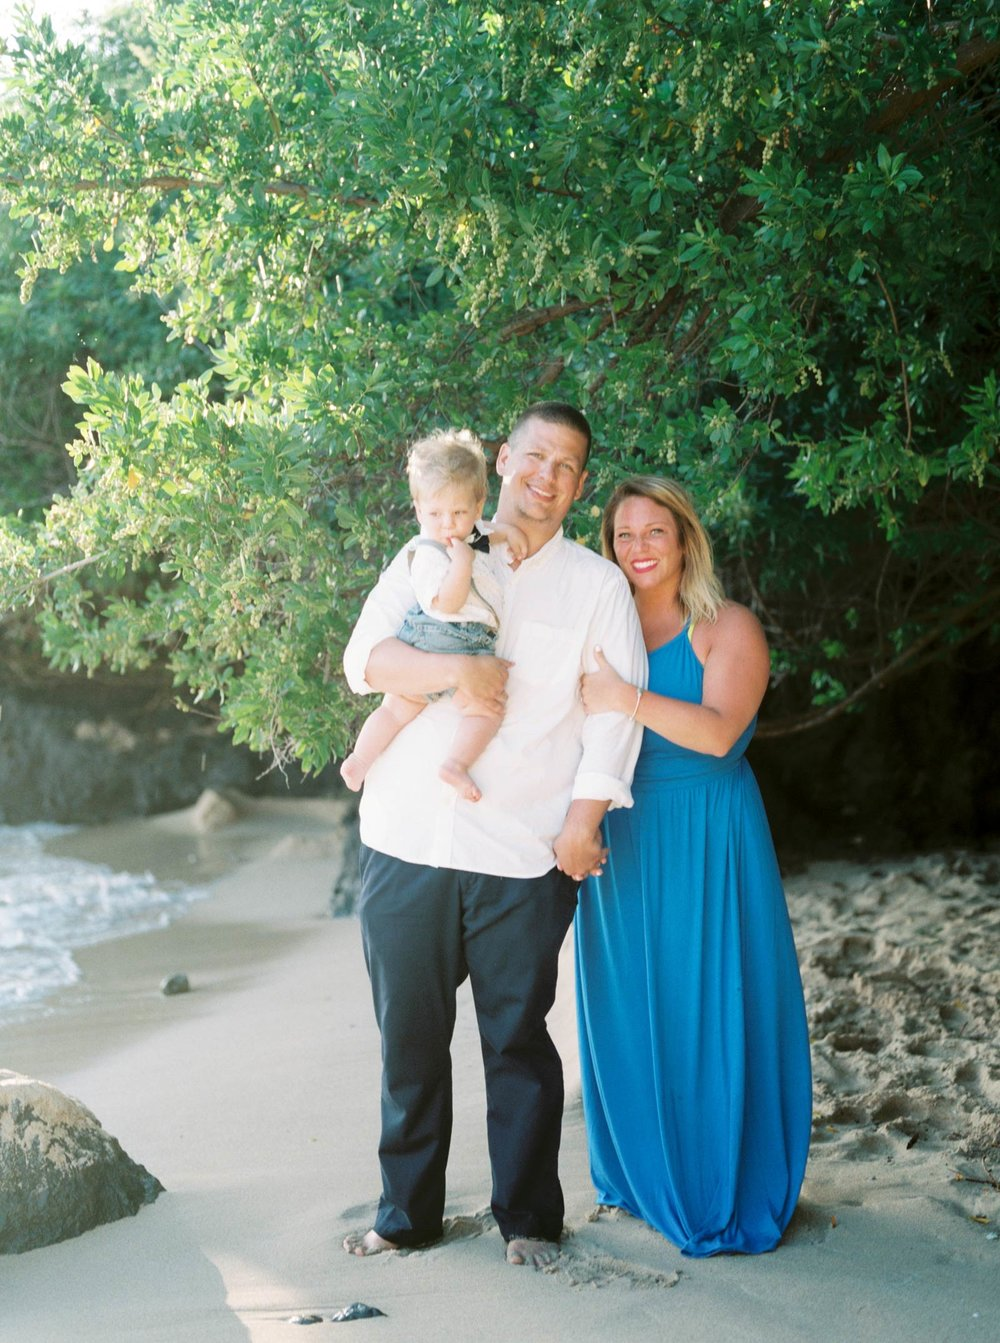 Maui-vow-renewal-family-photos-025.jpg